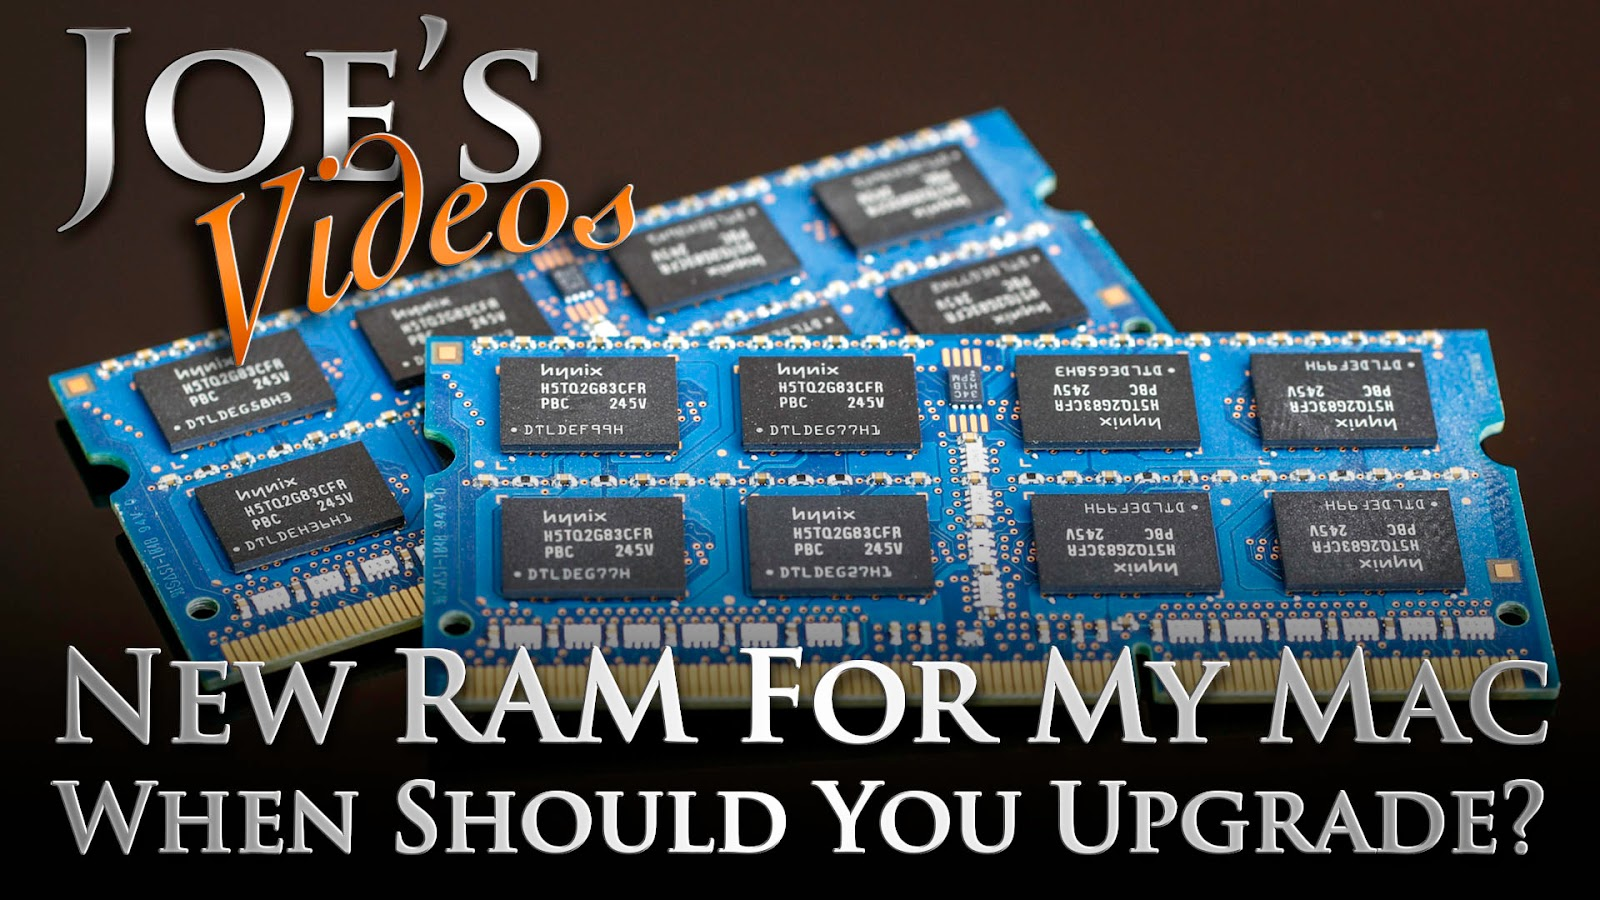 New RAM For My Mac, When Should You Upgrade? | Joe's Videos